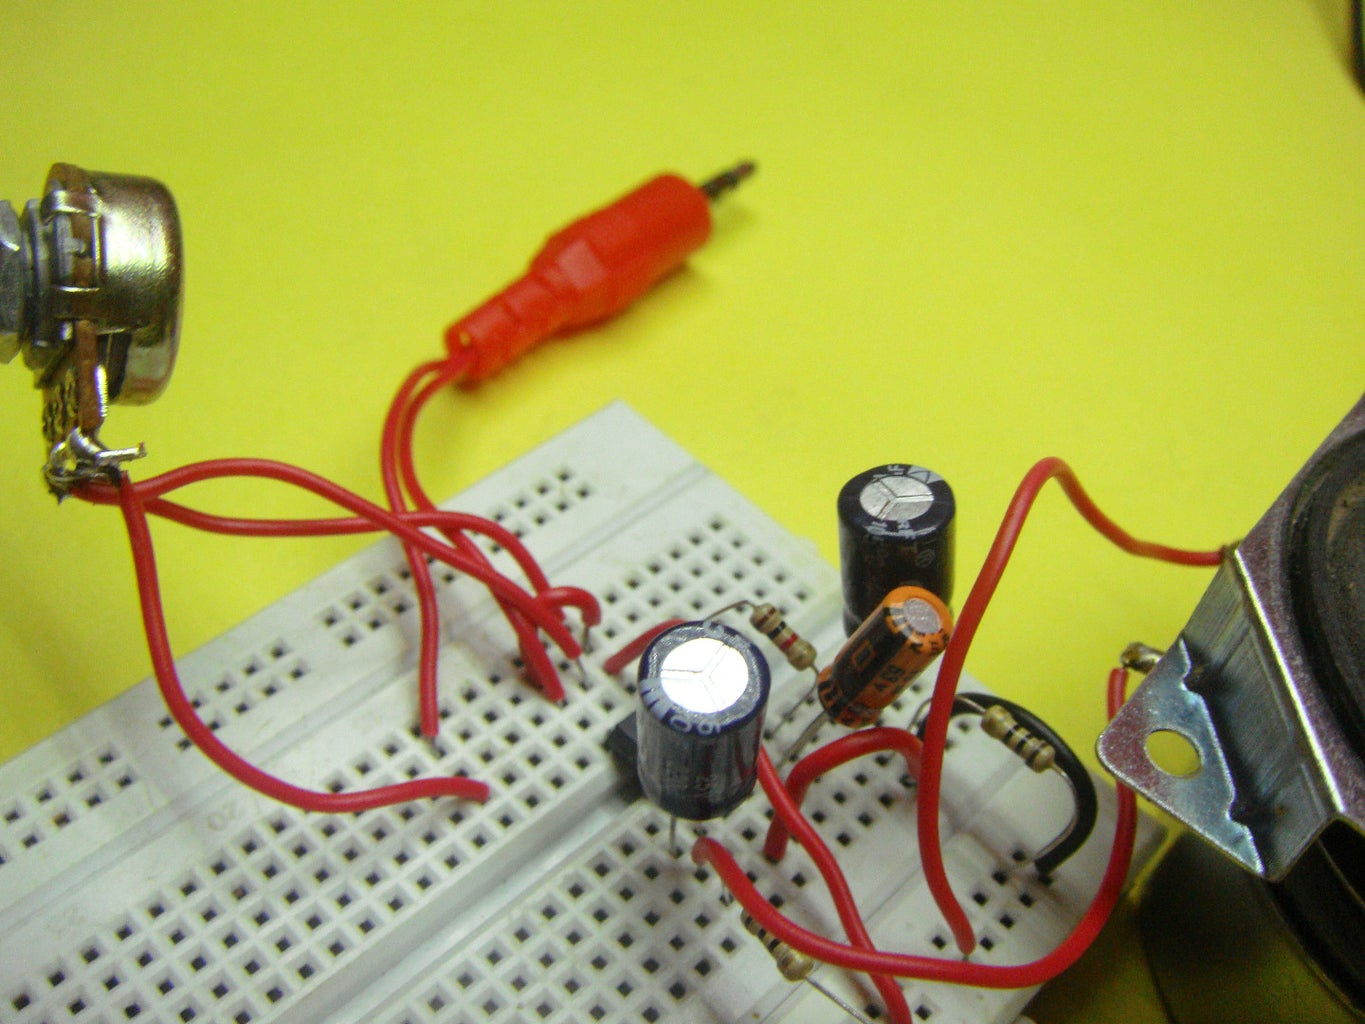 Prototyping the Amplifier Circuit